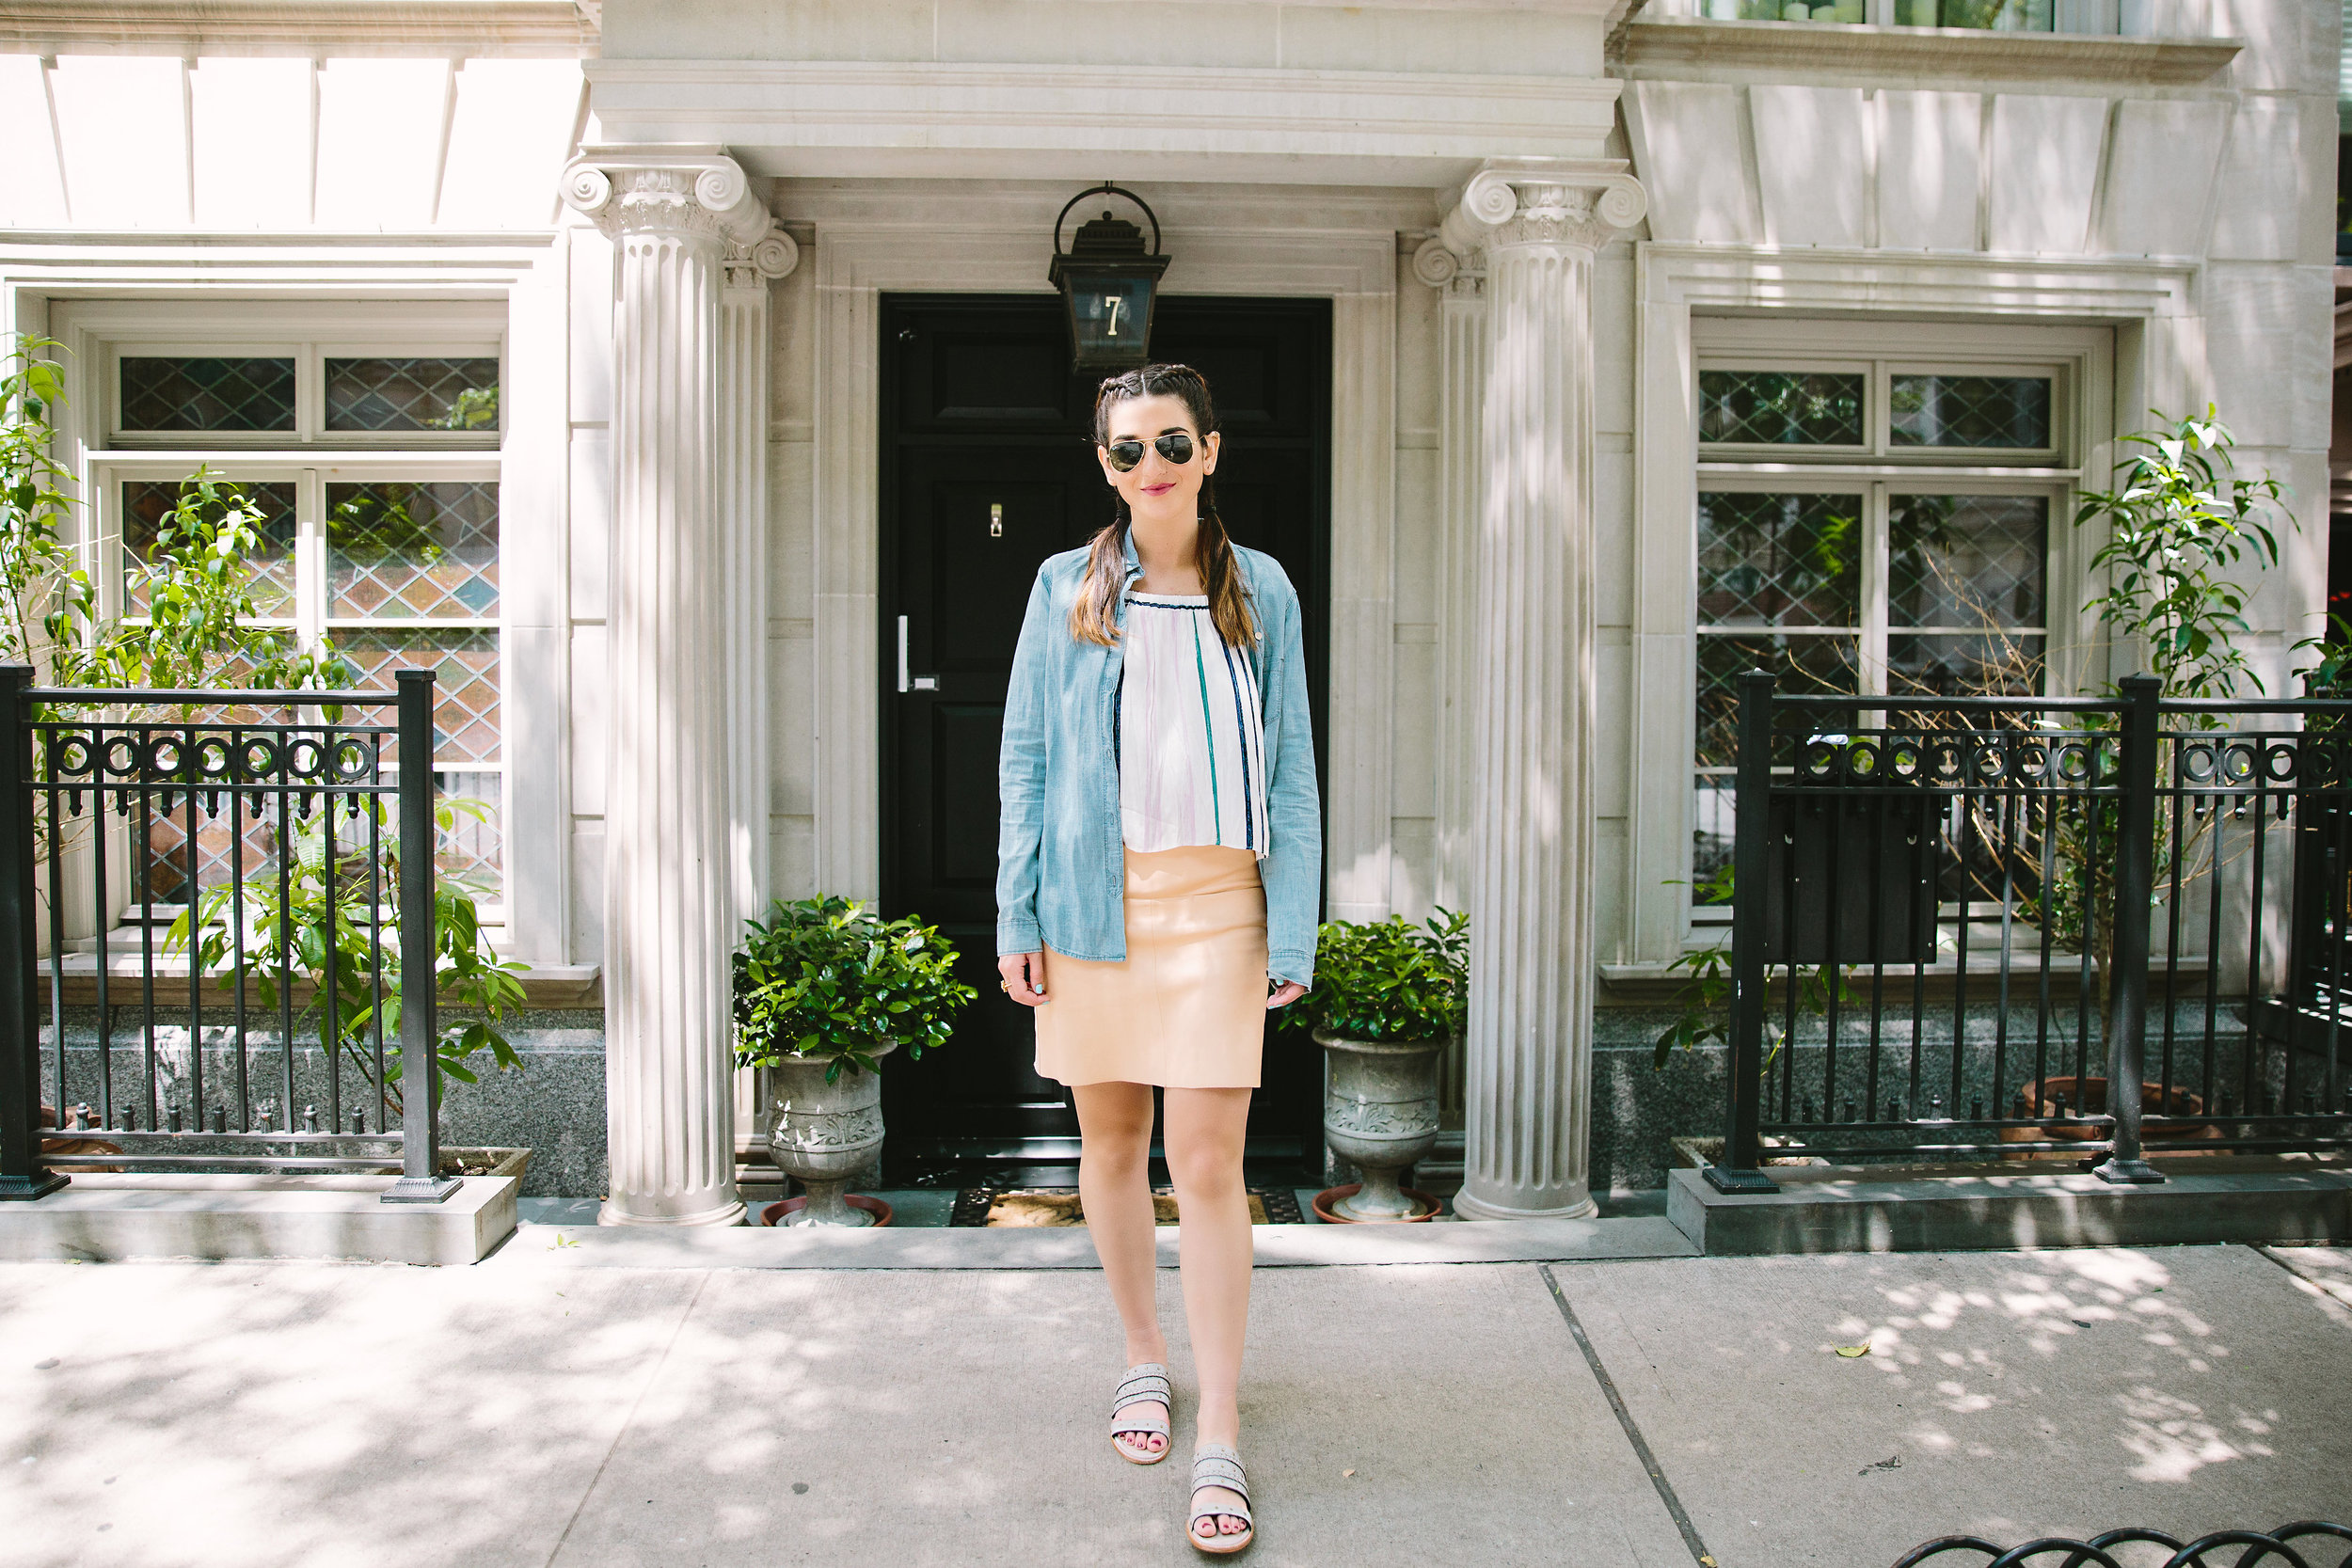 Stripes and Sandals M4D3 Shoes Louboutins & Love Fashion Blog Esther Santer NYC Street Style Blogger OOTD Outfit Shop Sunglasses RayBan Aviators Jean Shirt Pink Pleather Skirt New York City Photoshoot Summer Look Girl Women Pretty Braids Hair Inspo.jpg